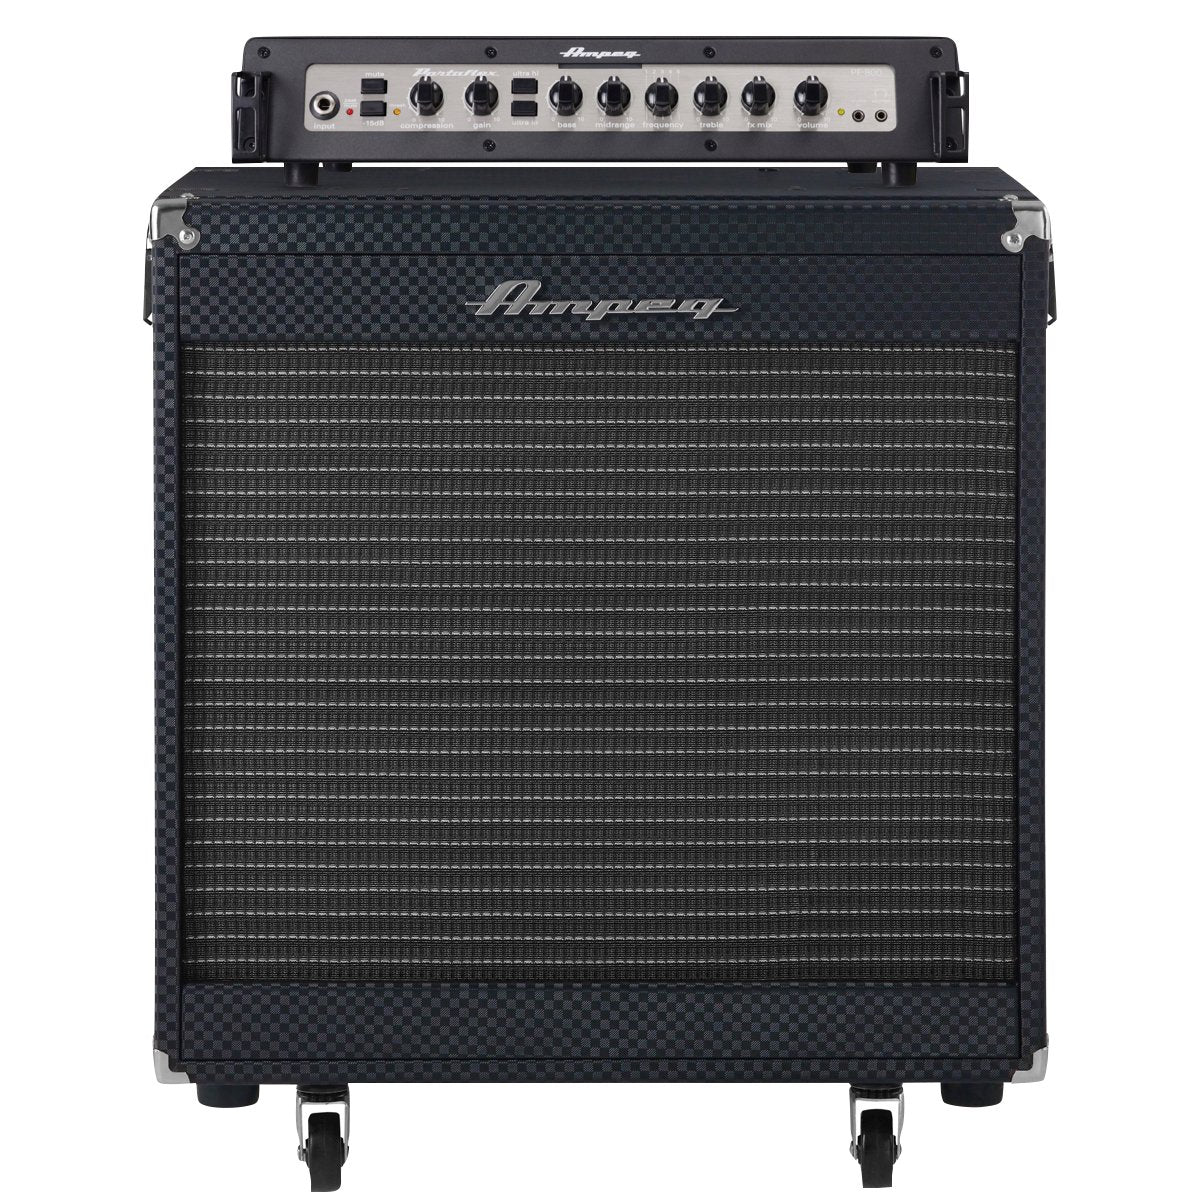 Ampeg Portaflex PF800 Head and PF115HE Cab Bass Amplifier Stack